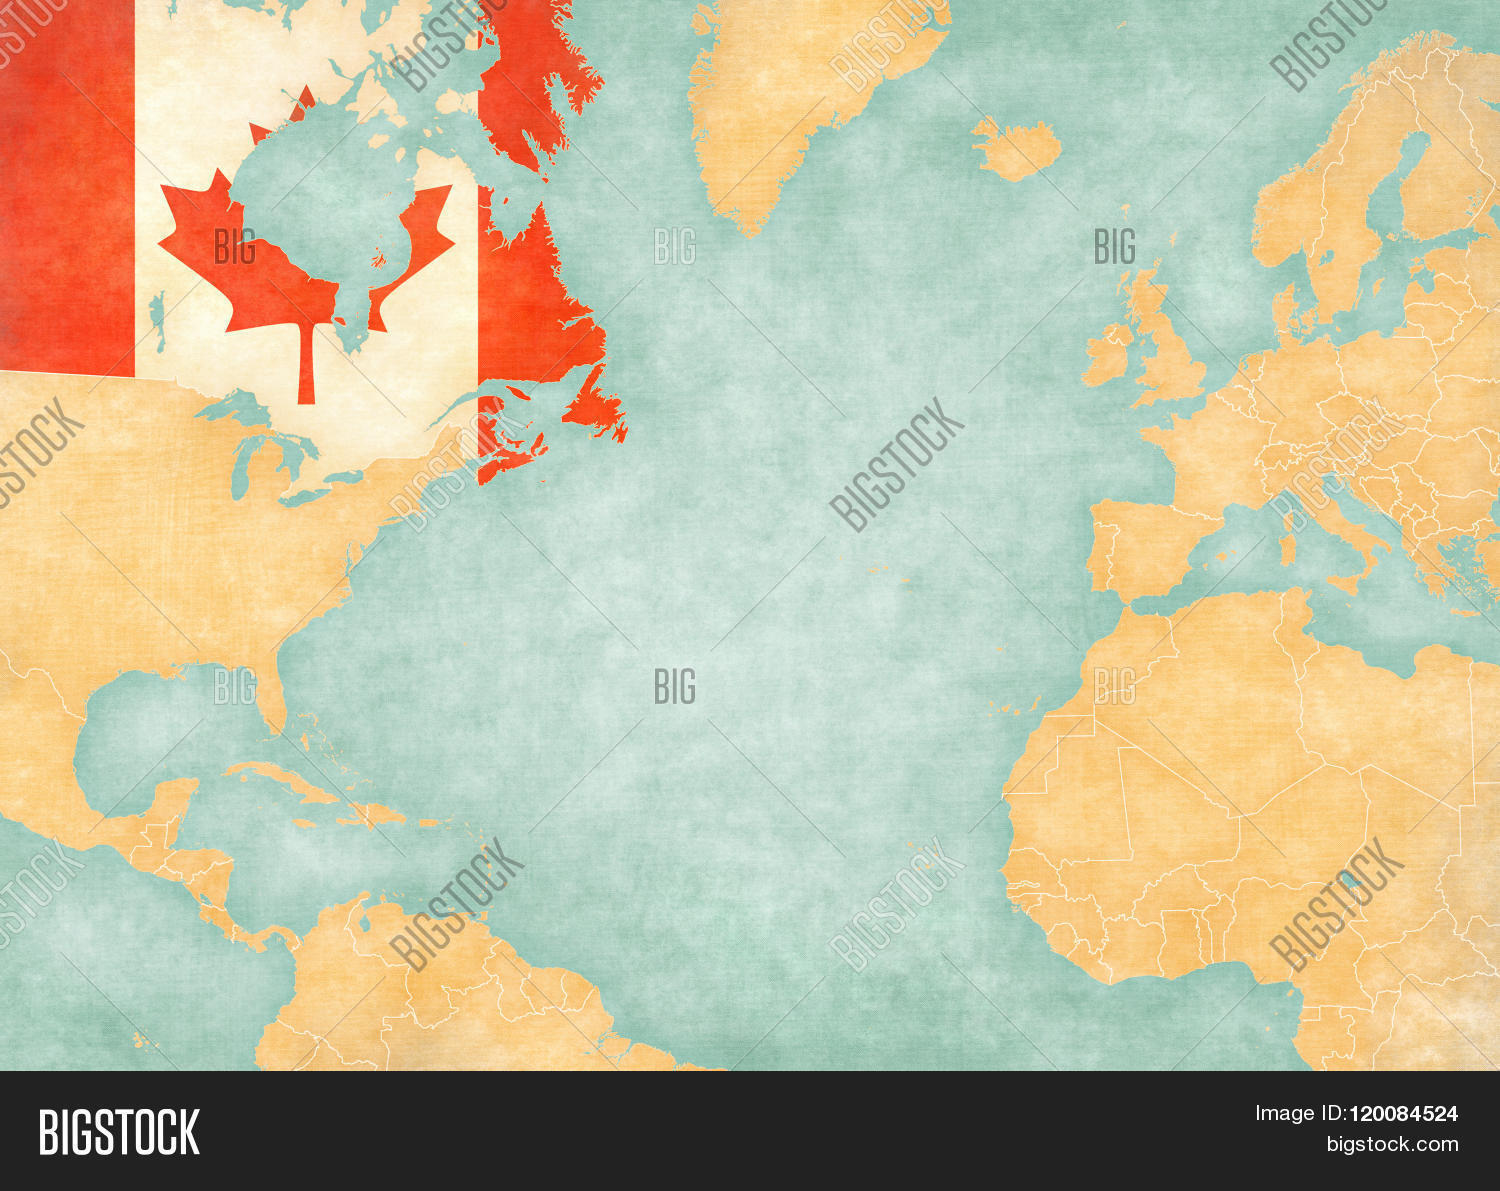 Canada canadian flag on map north image photo bigstock canada canadian flag on the map of north atlantic ocean the map is gumiabroncs Choice Image